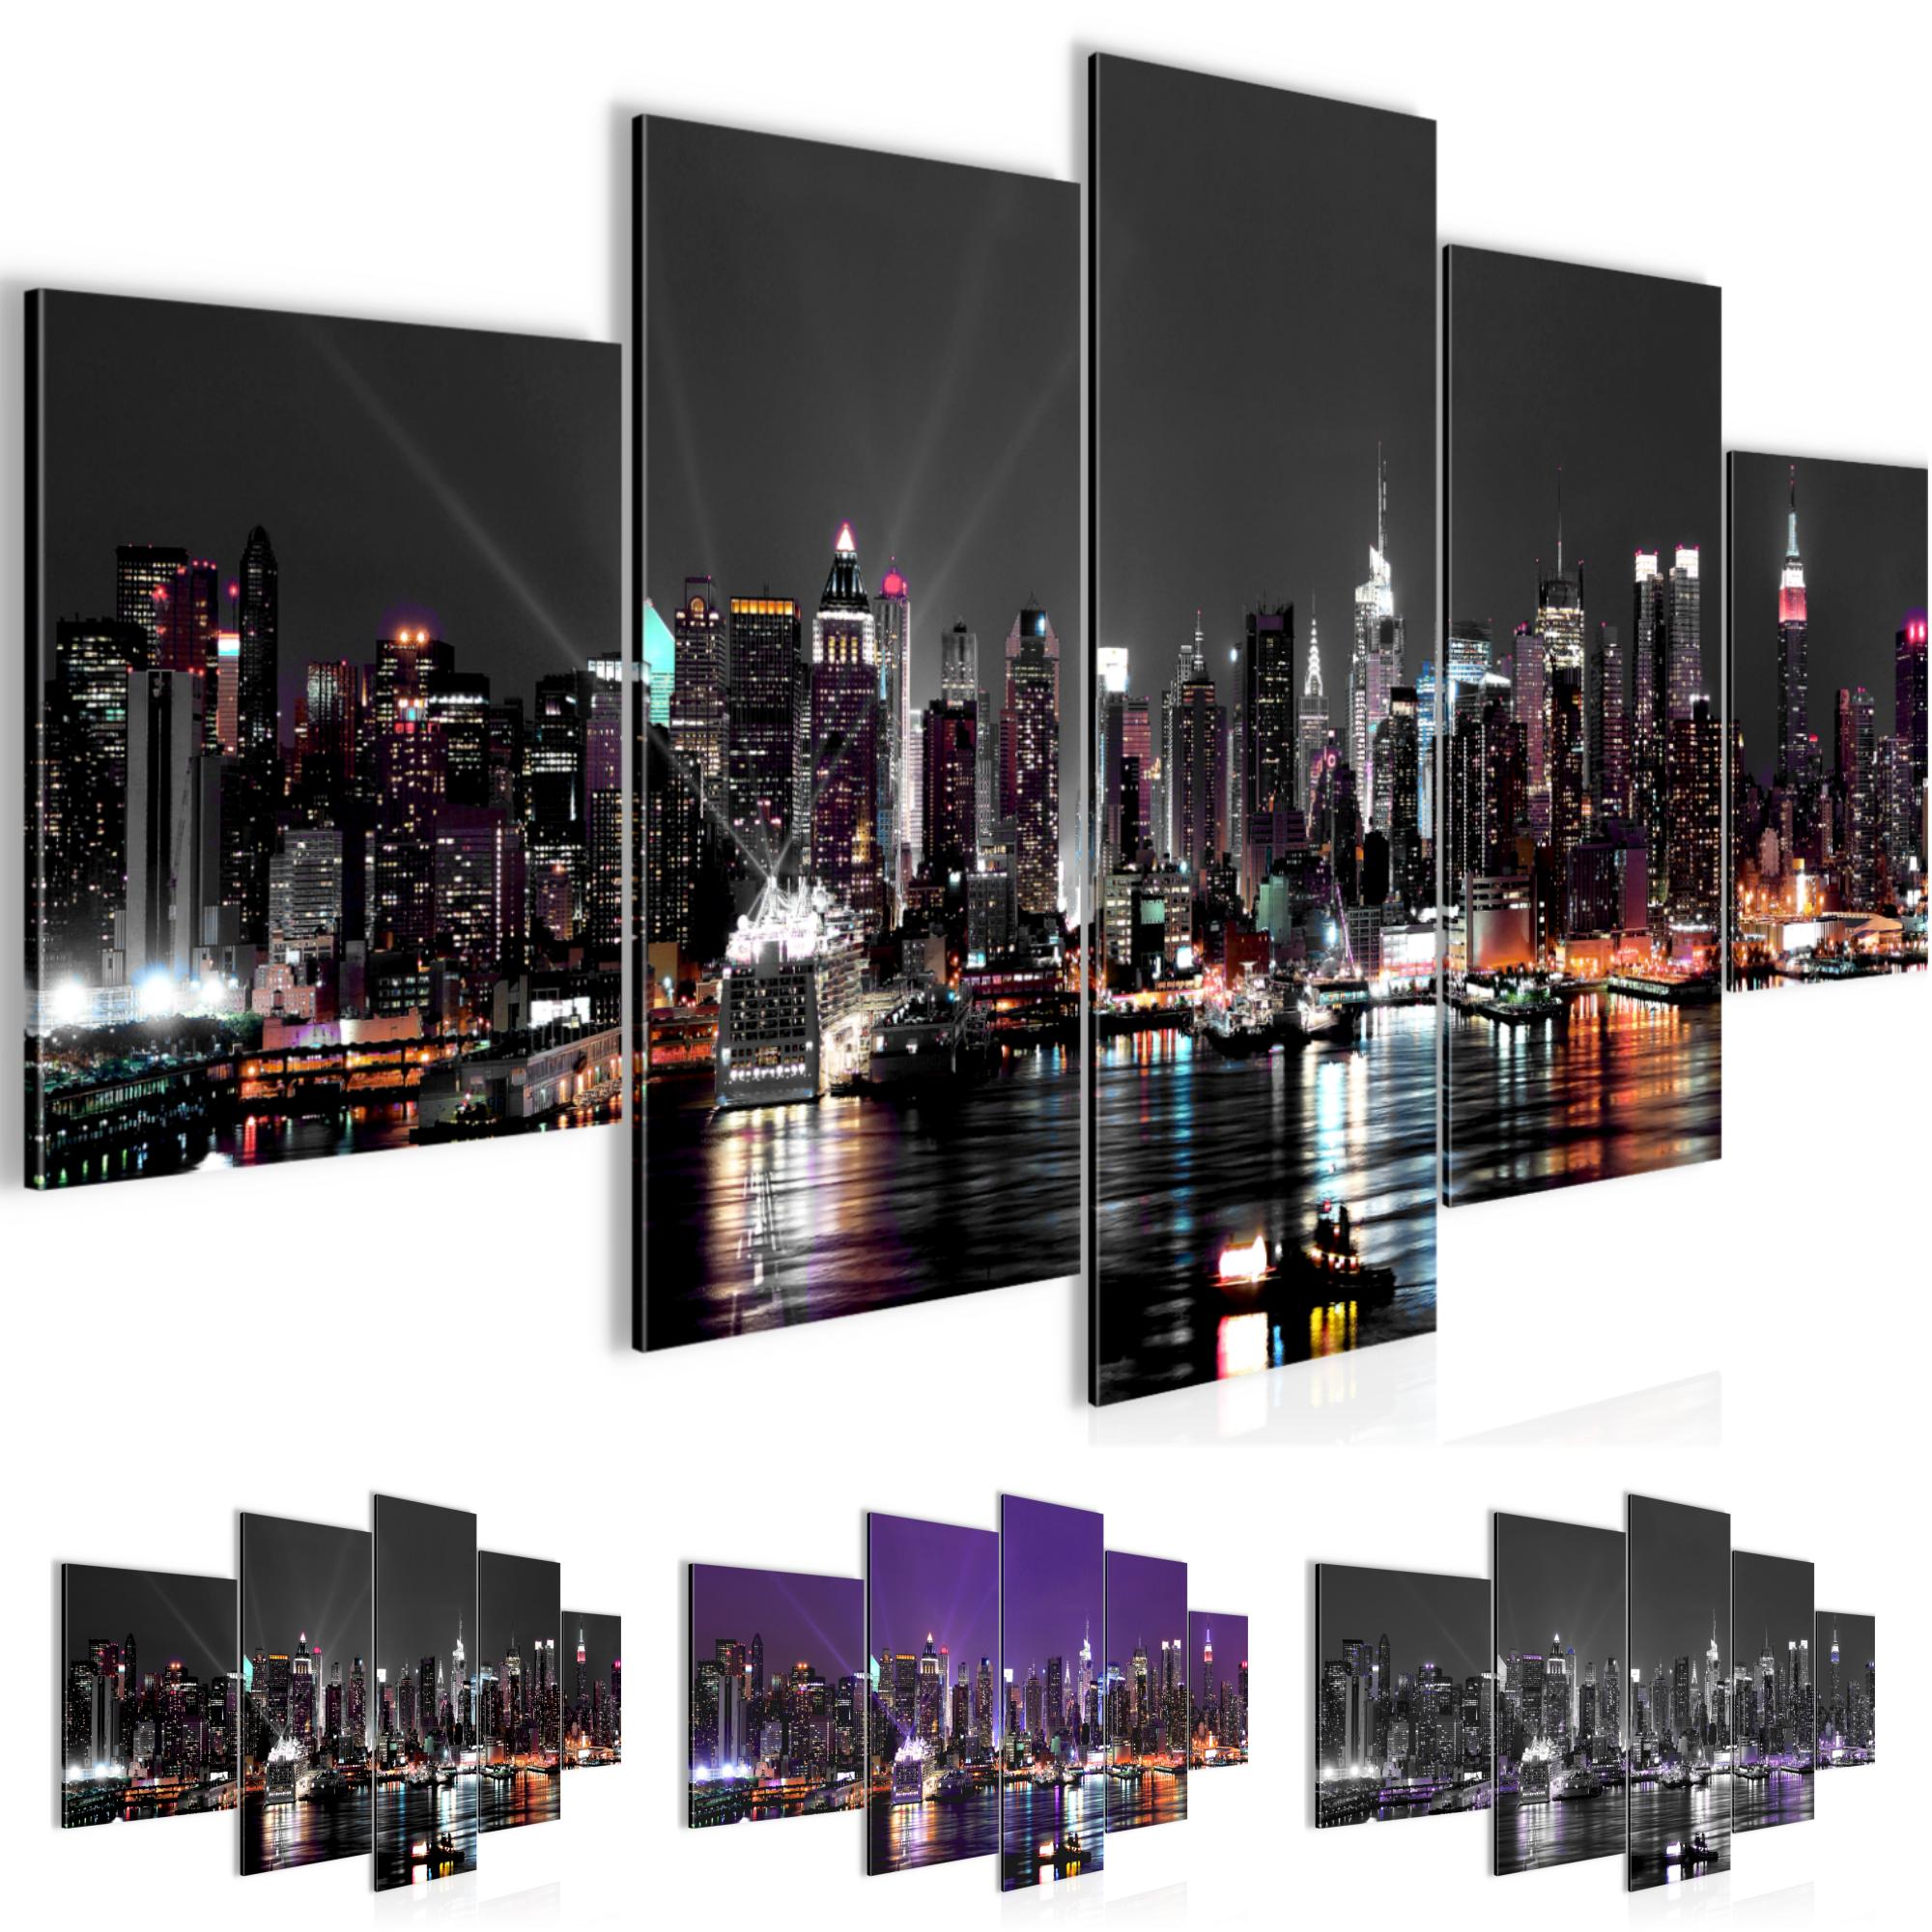 new york city bild kunstdruck auf vlies leinwand xxl dekoration 60195p. Black Bedroom Furniture Sets. Home Design Ideas